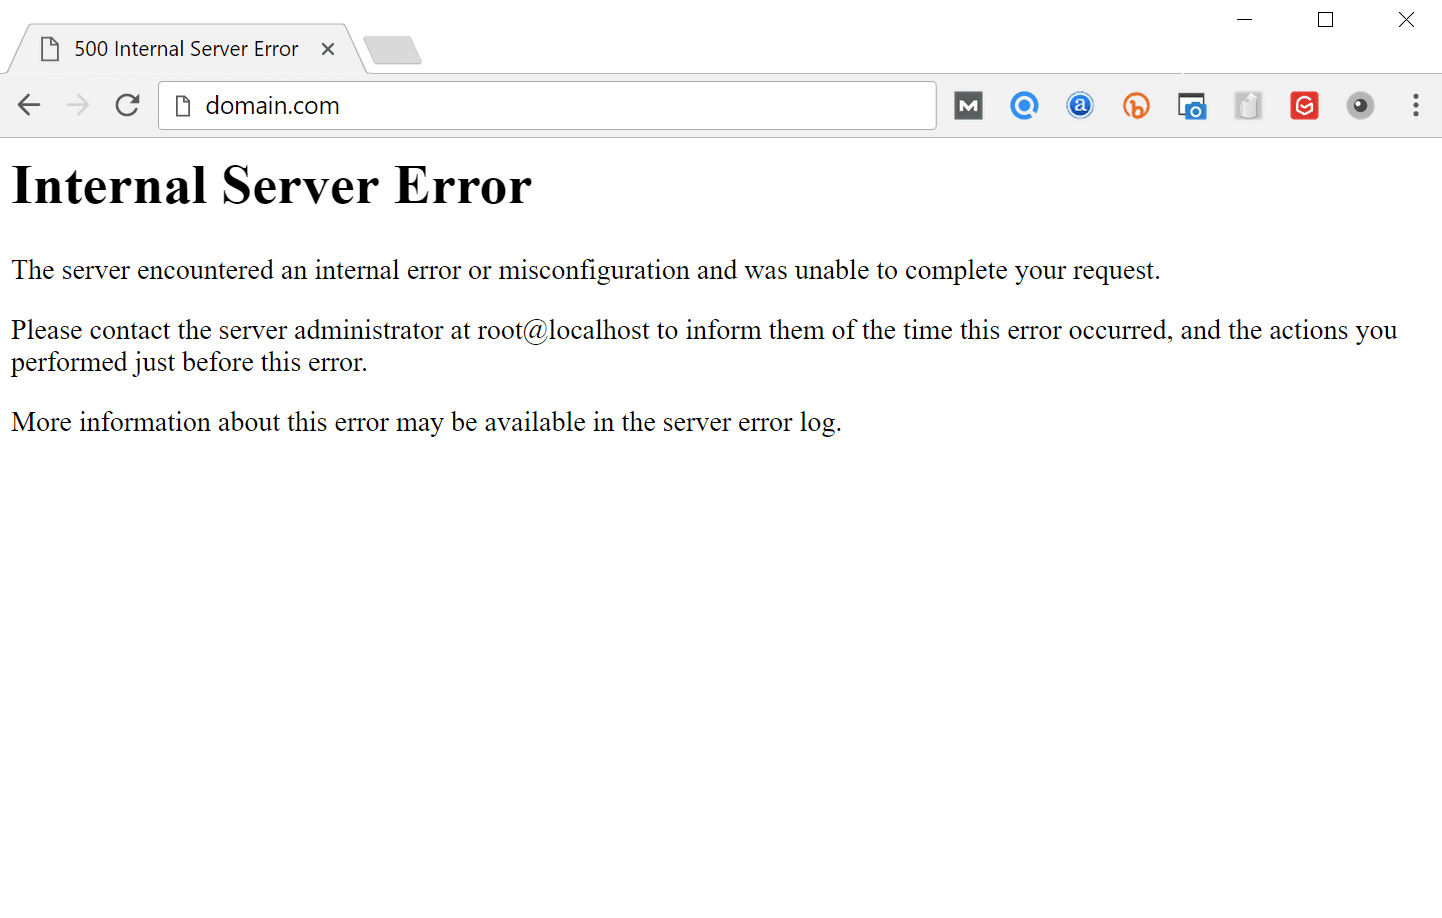 Errore interno del server